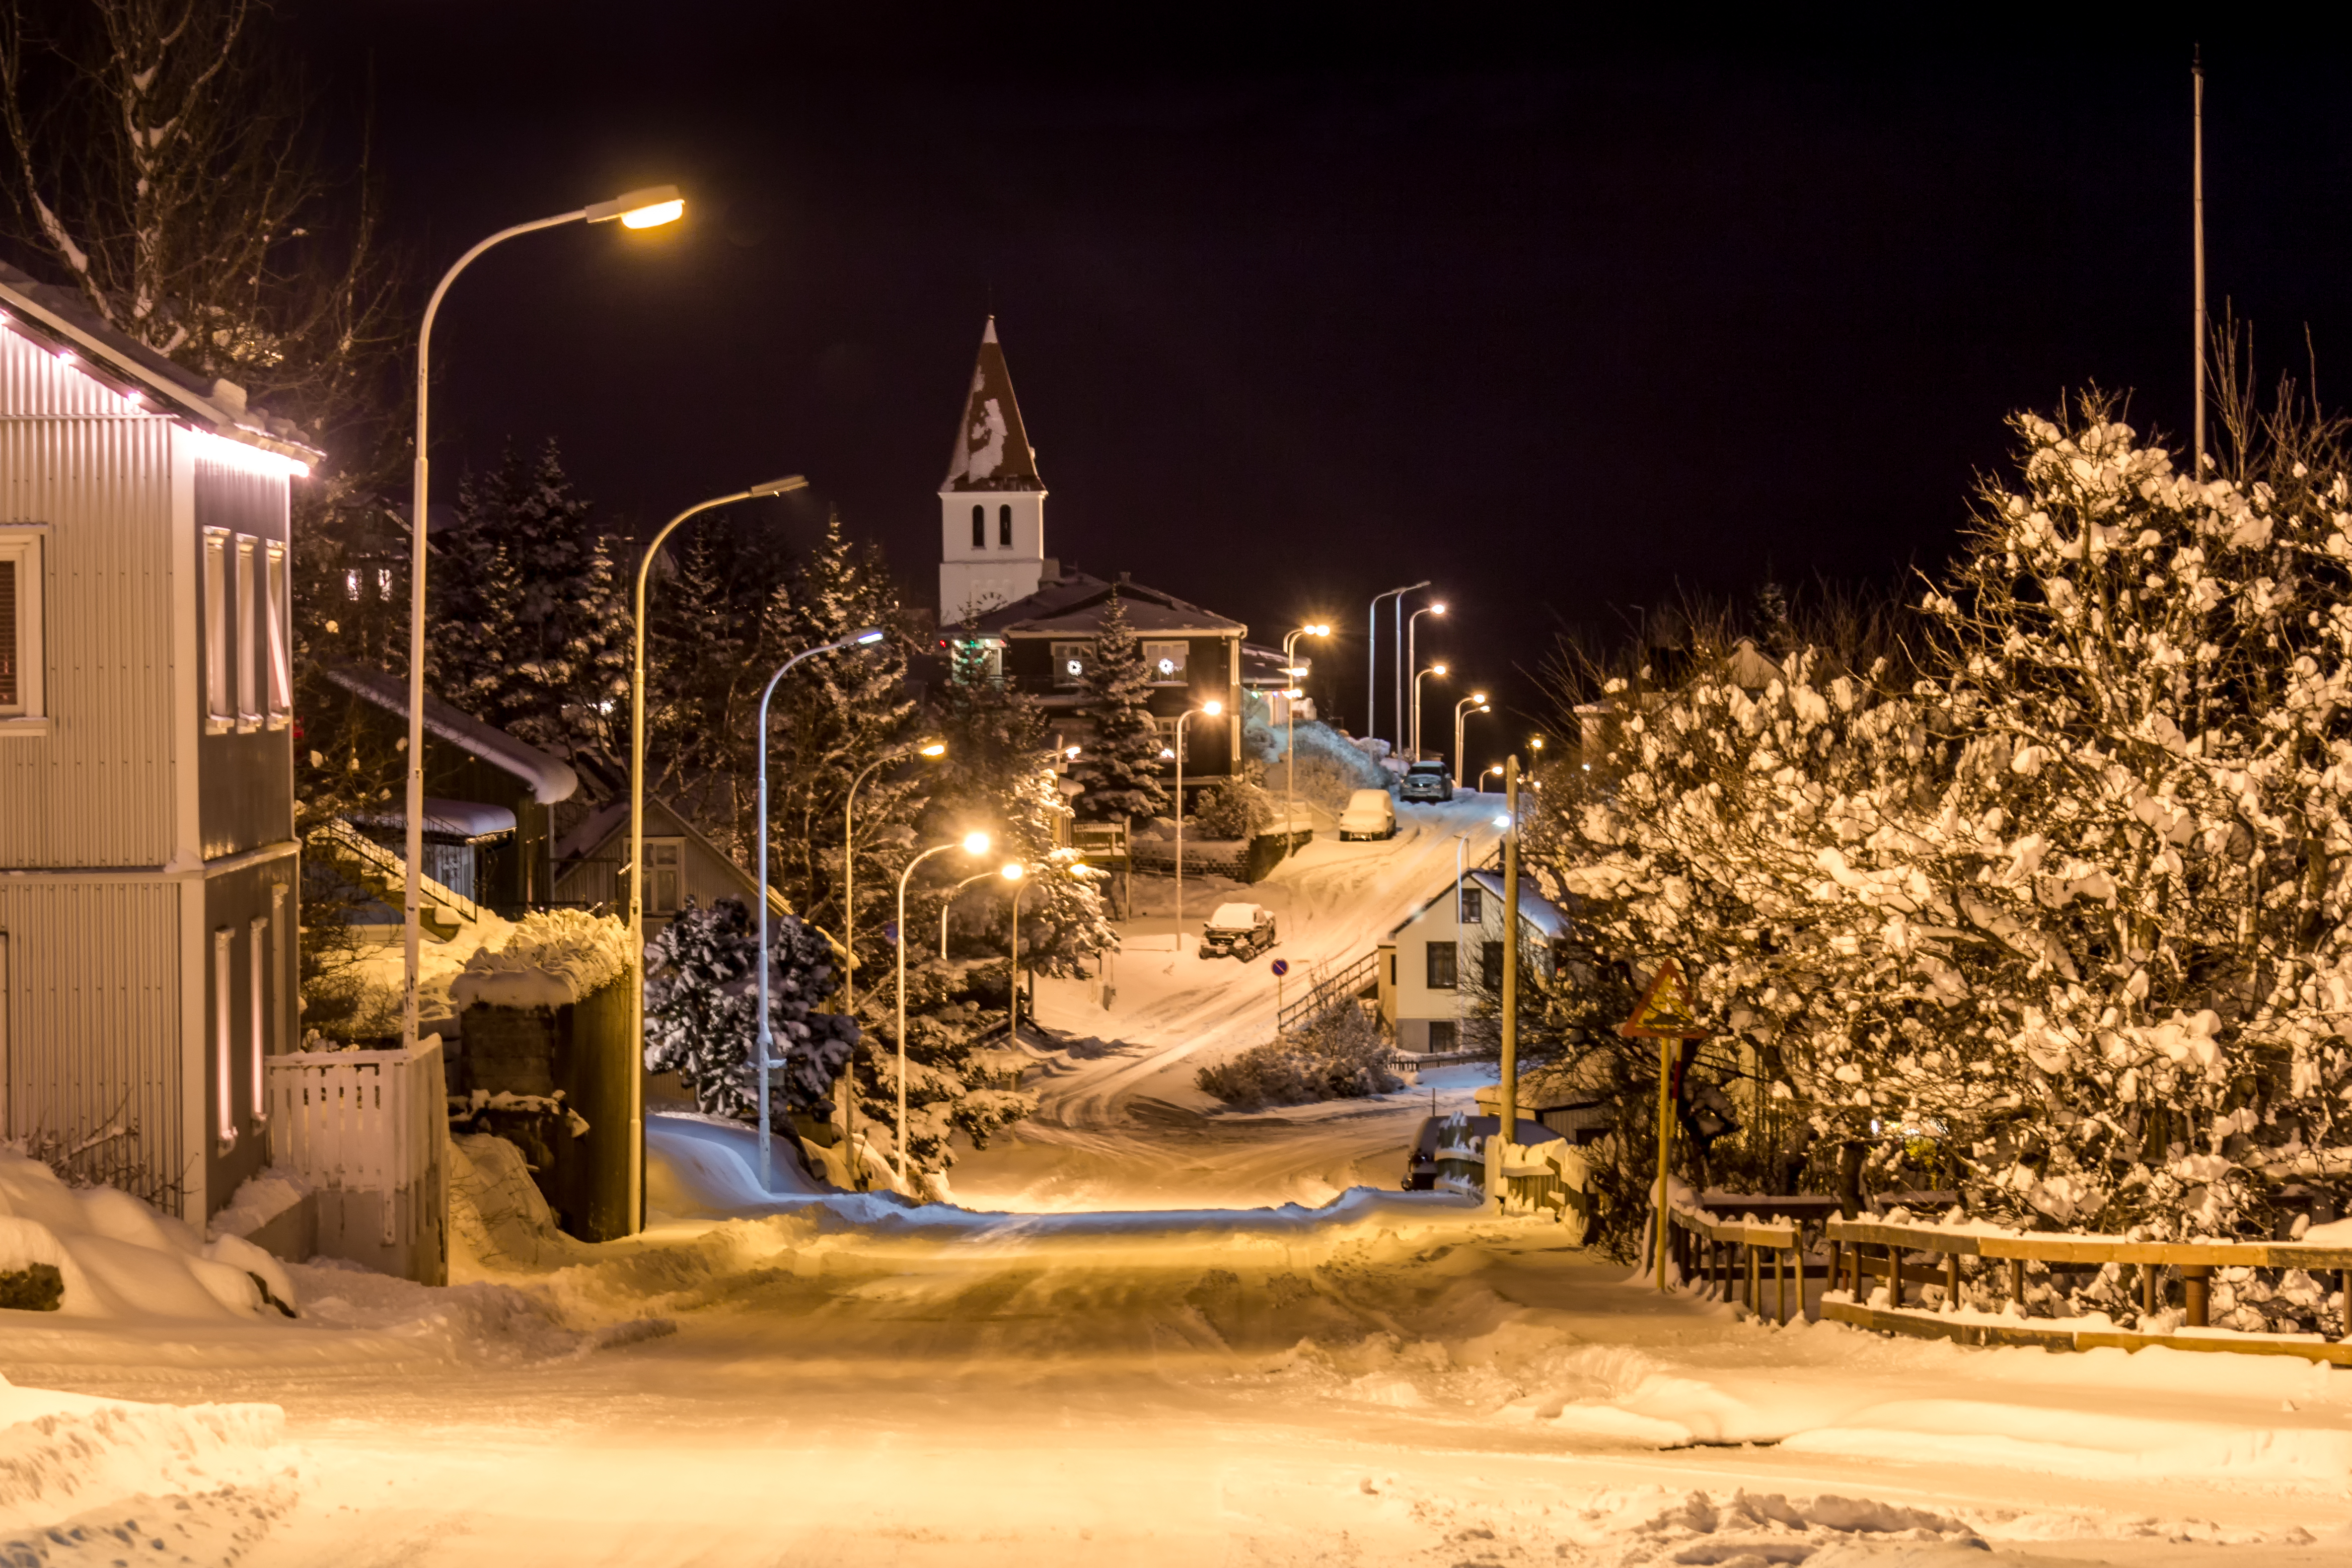 The town of Sigló covered in snow